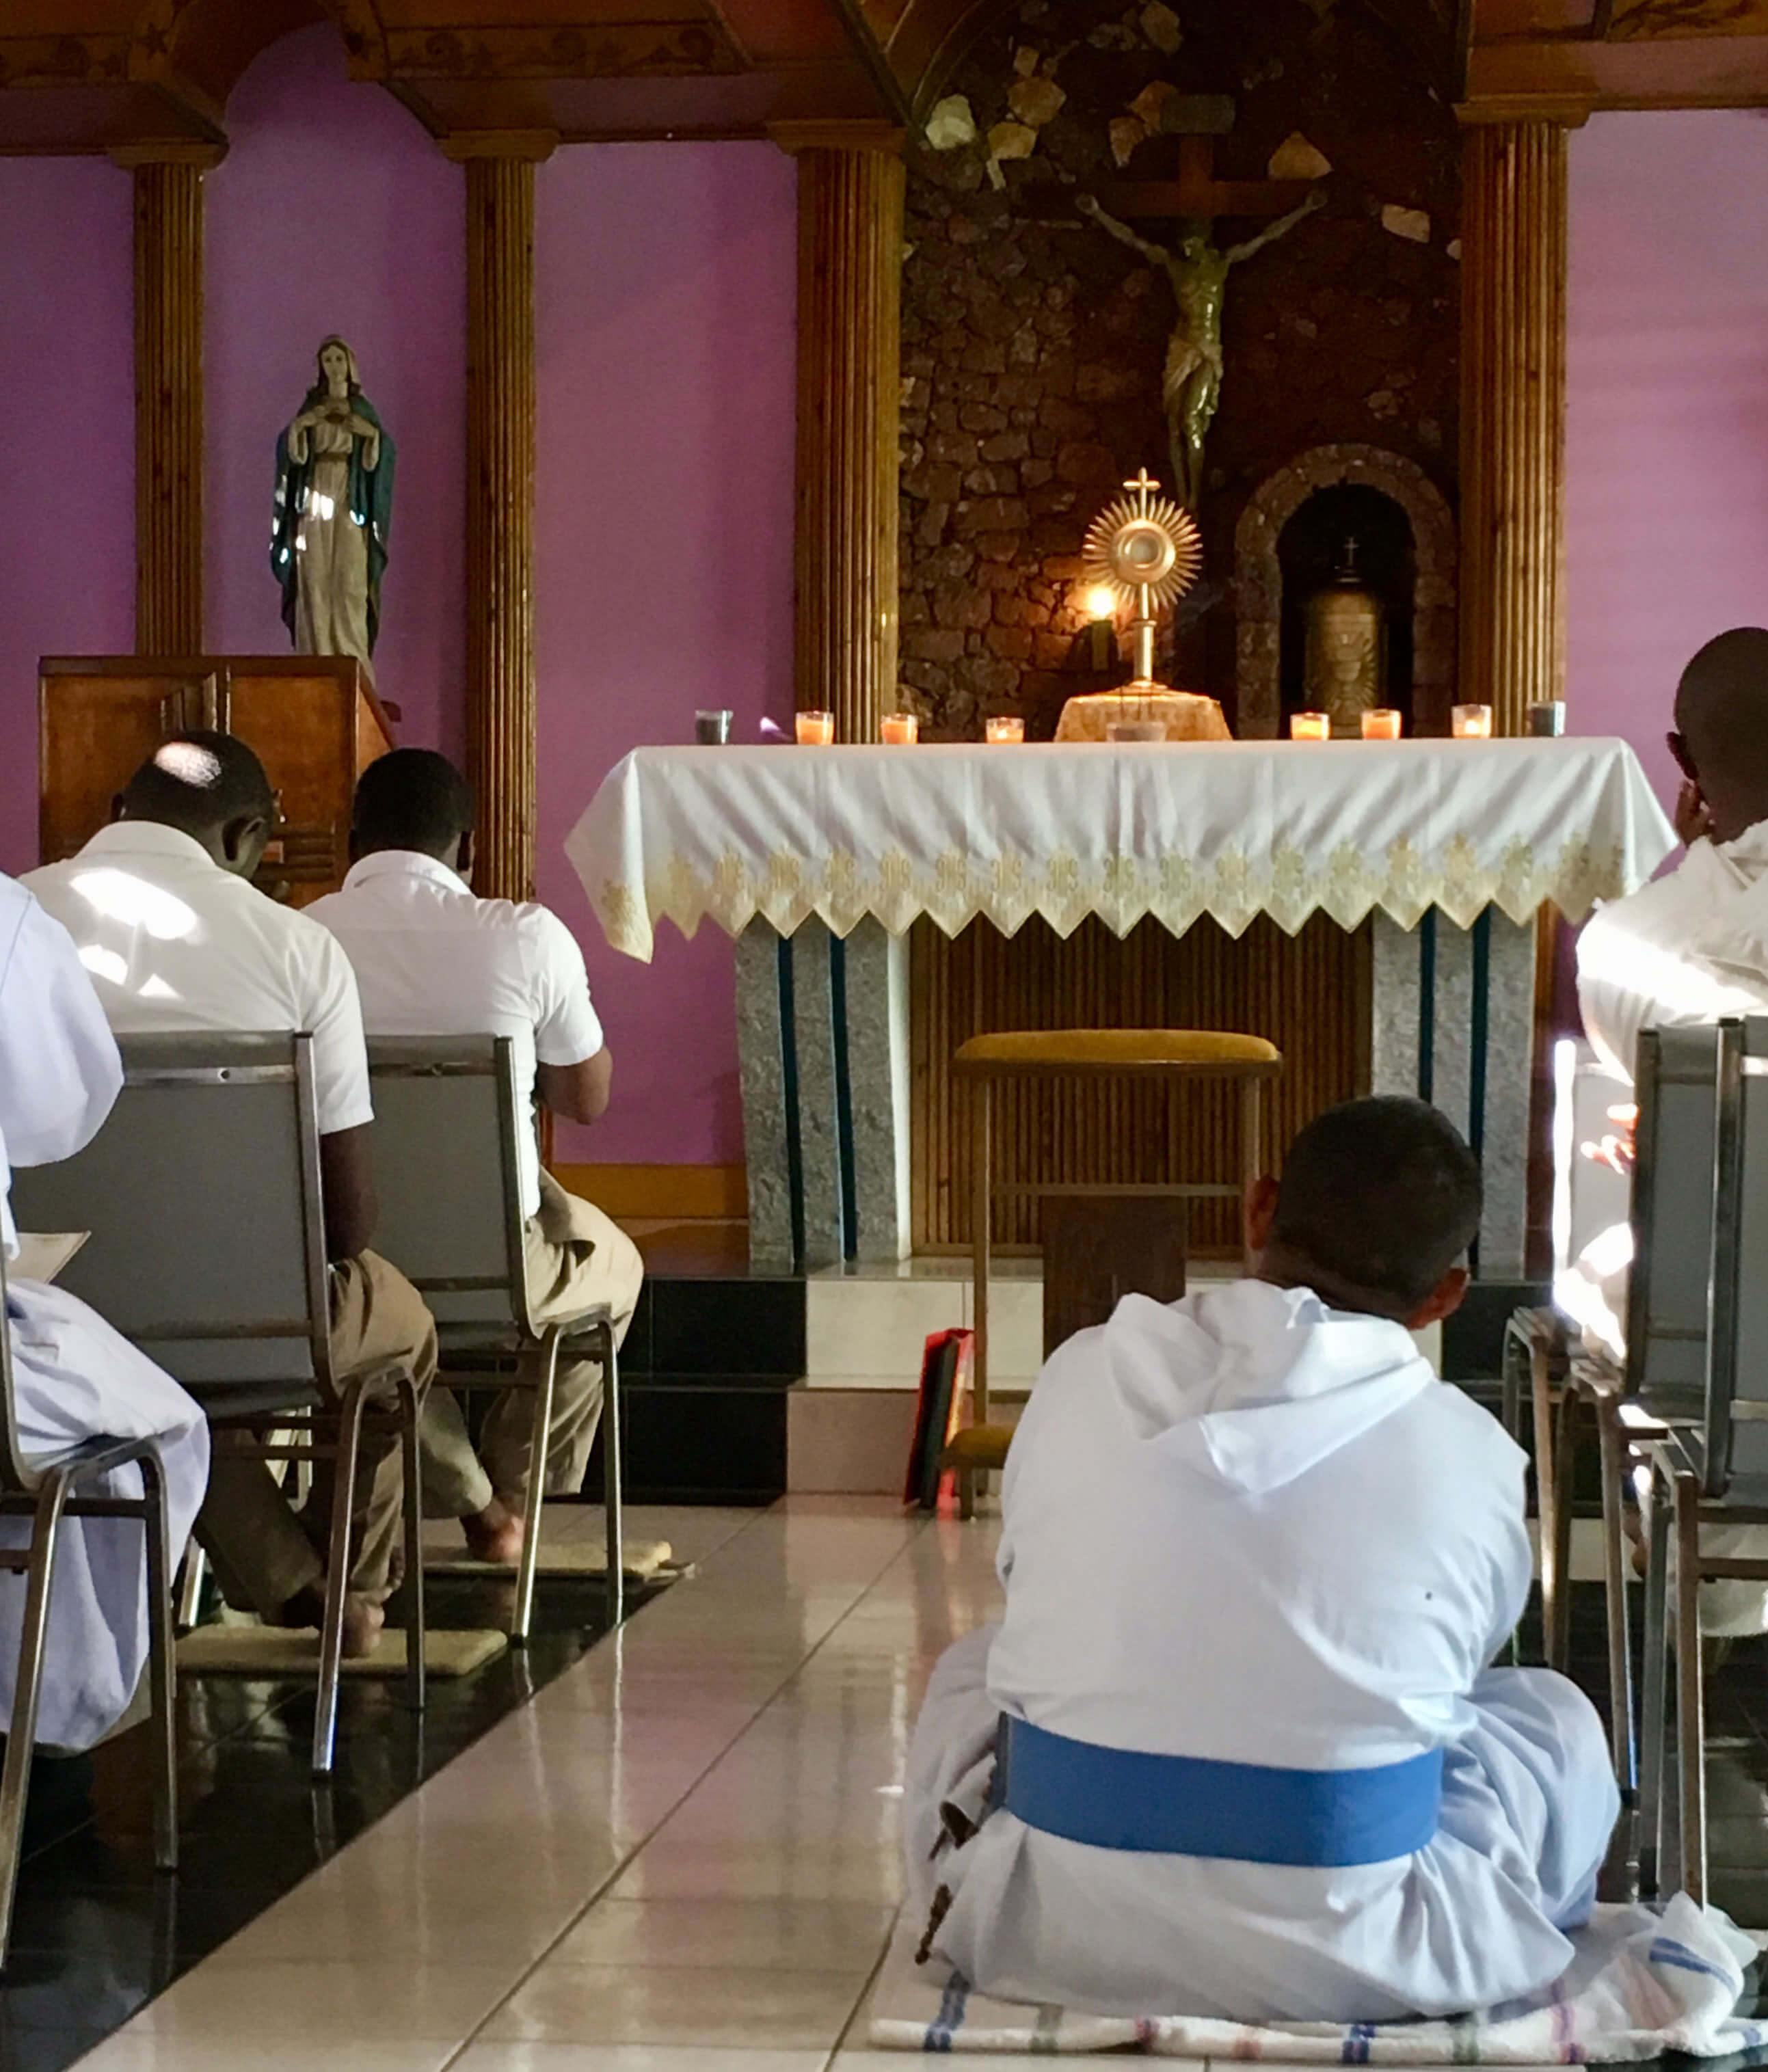 Every day with the Missionaries of the Poor begins with prayer before the Blessed Sacrament.